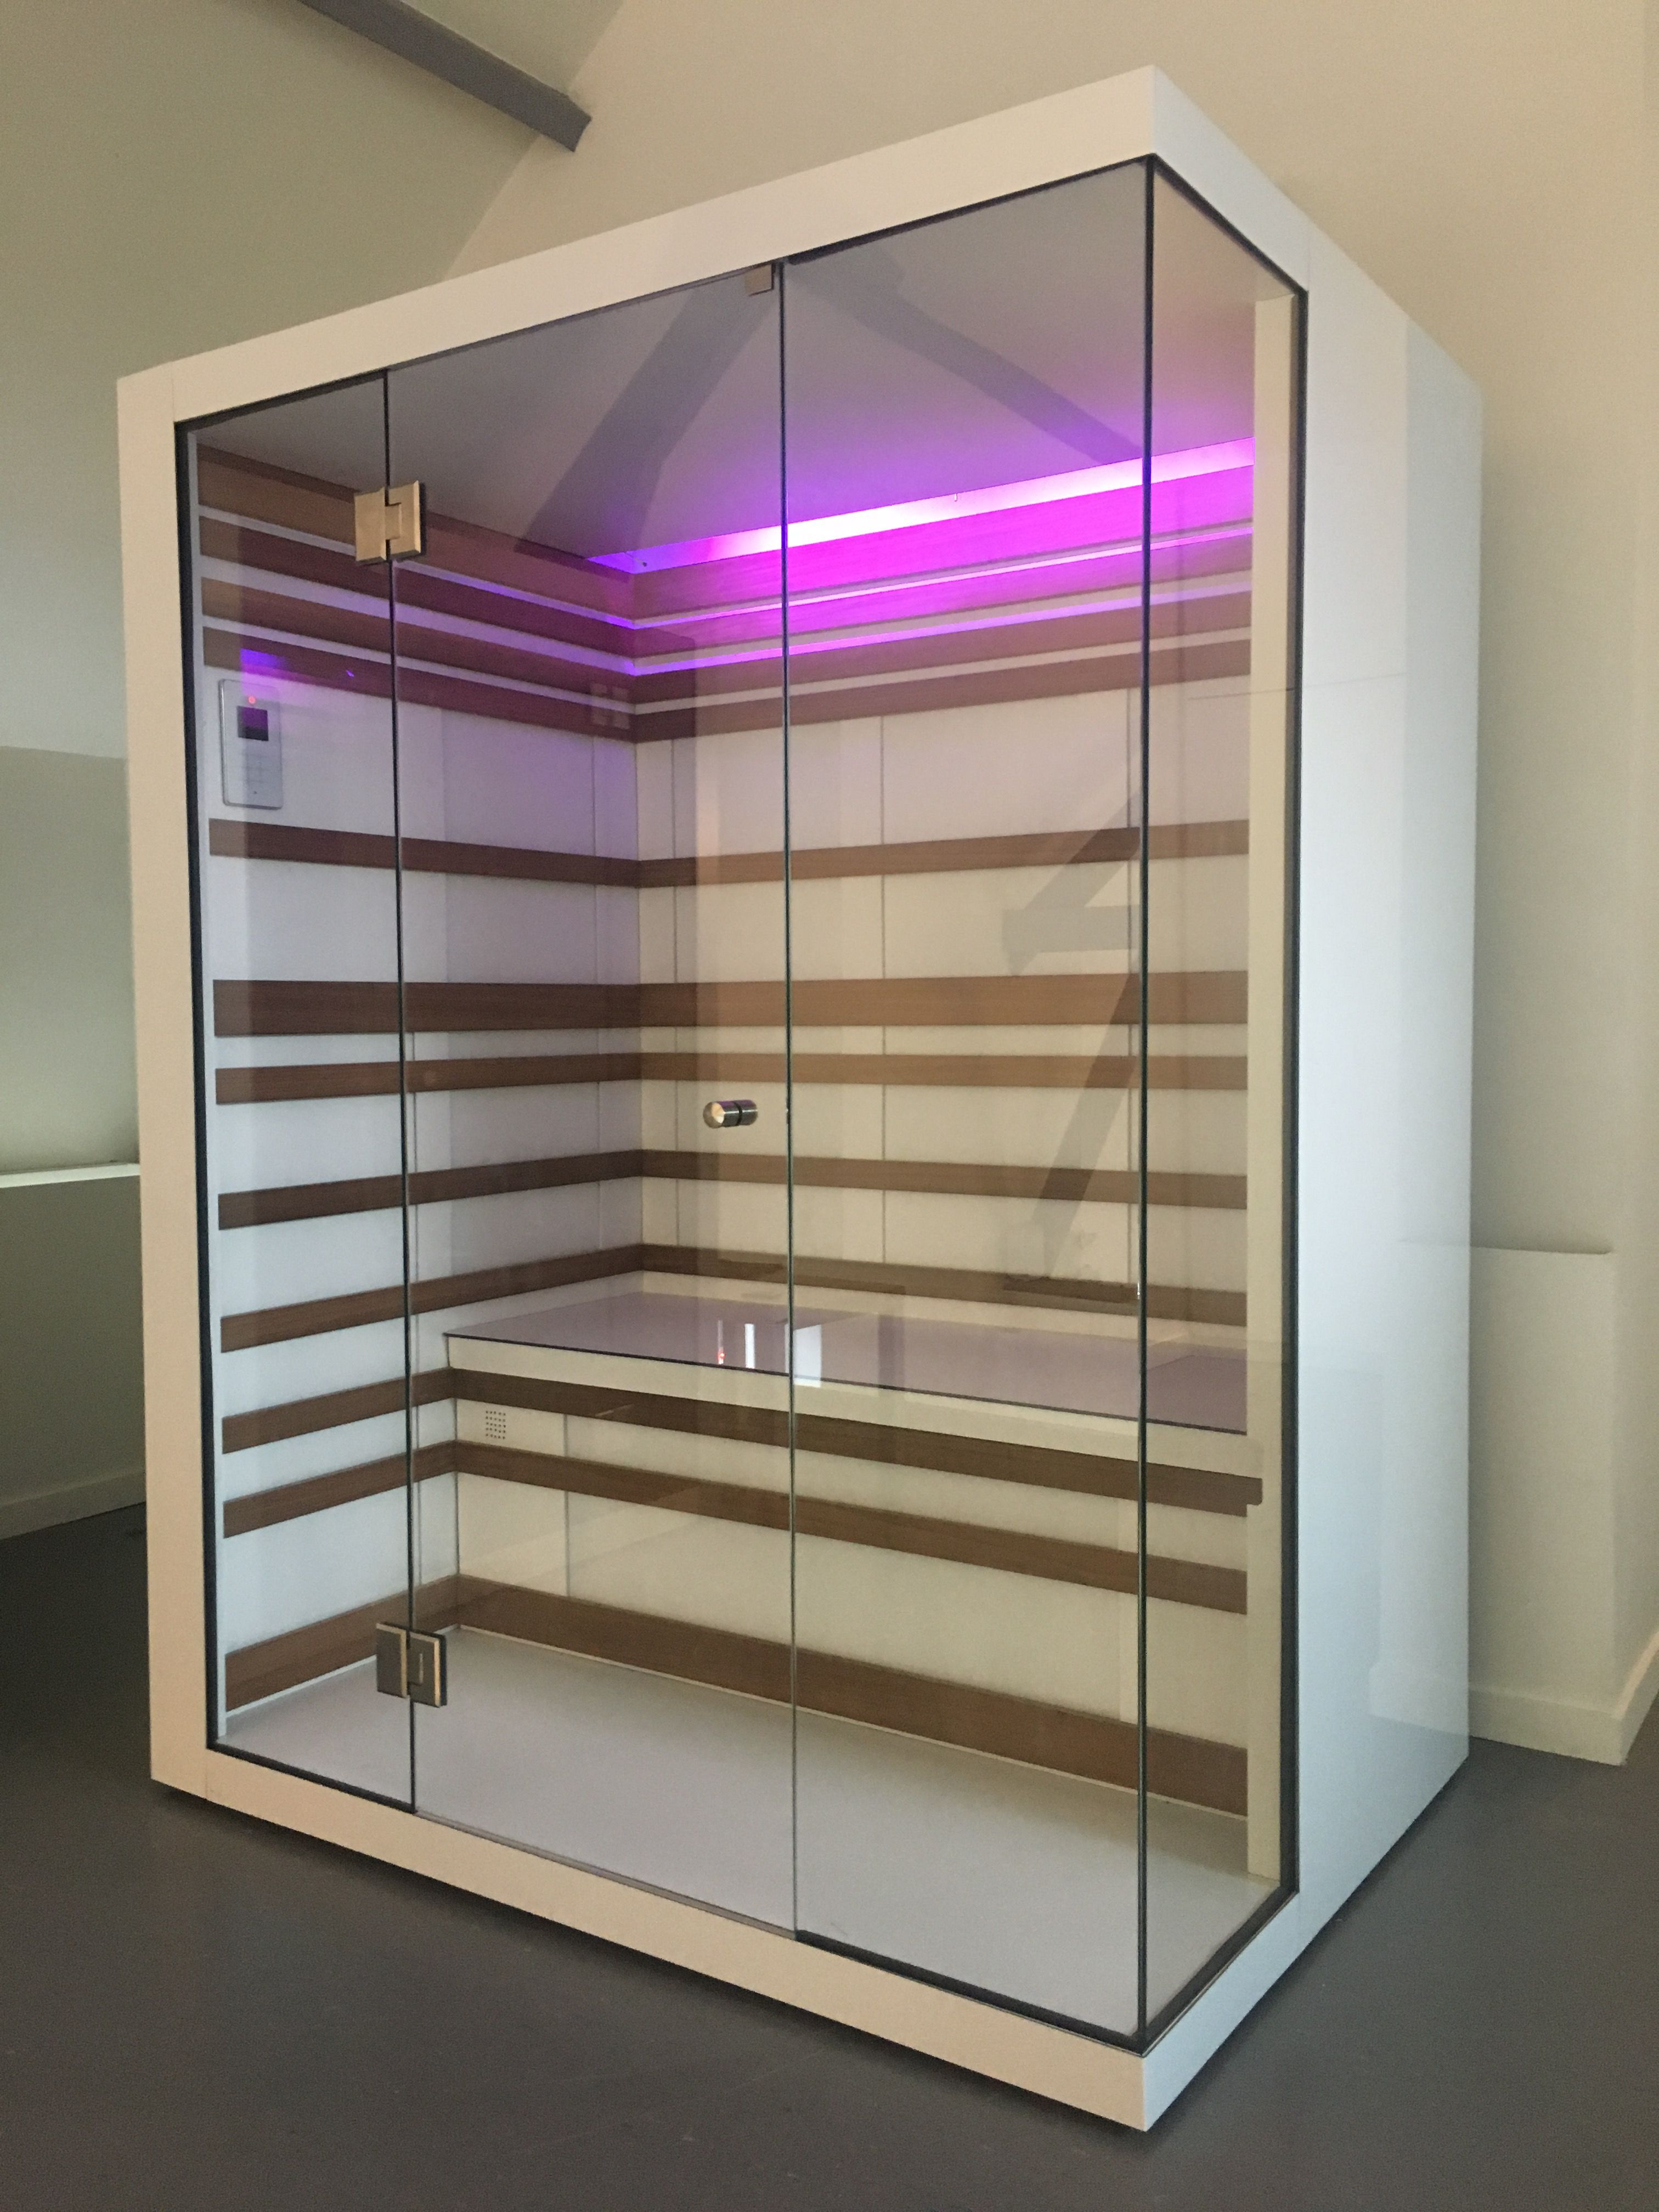 Kombisauna White Infrared Sauna With Glass Corner Design Infrared Sauna In